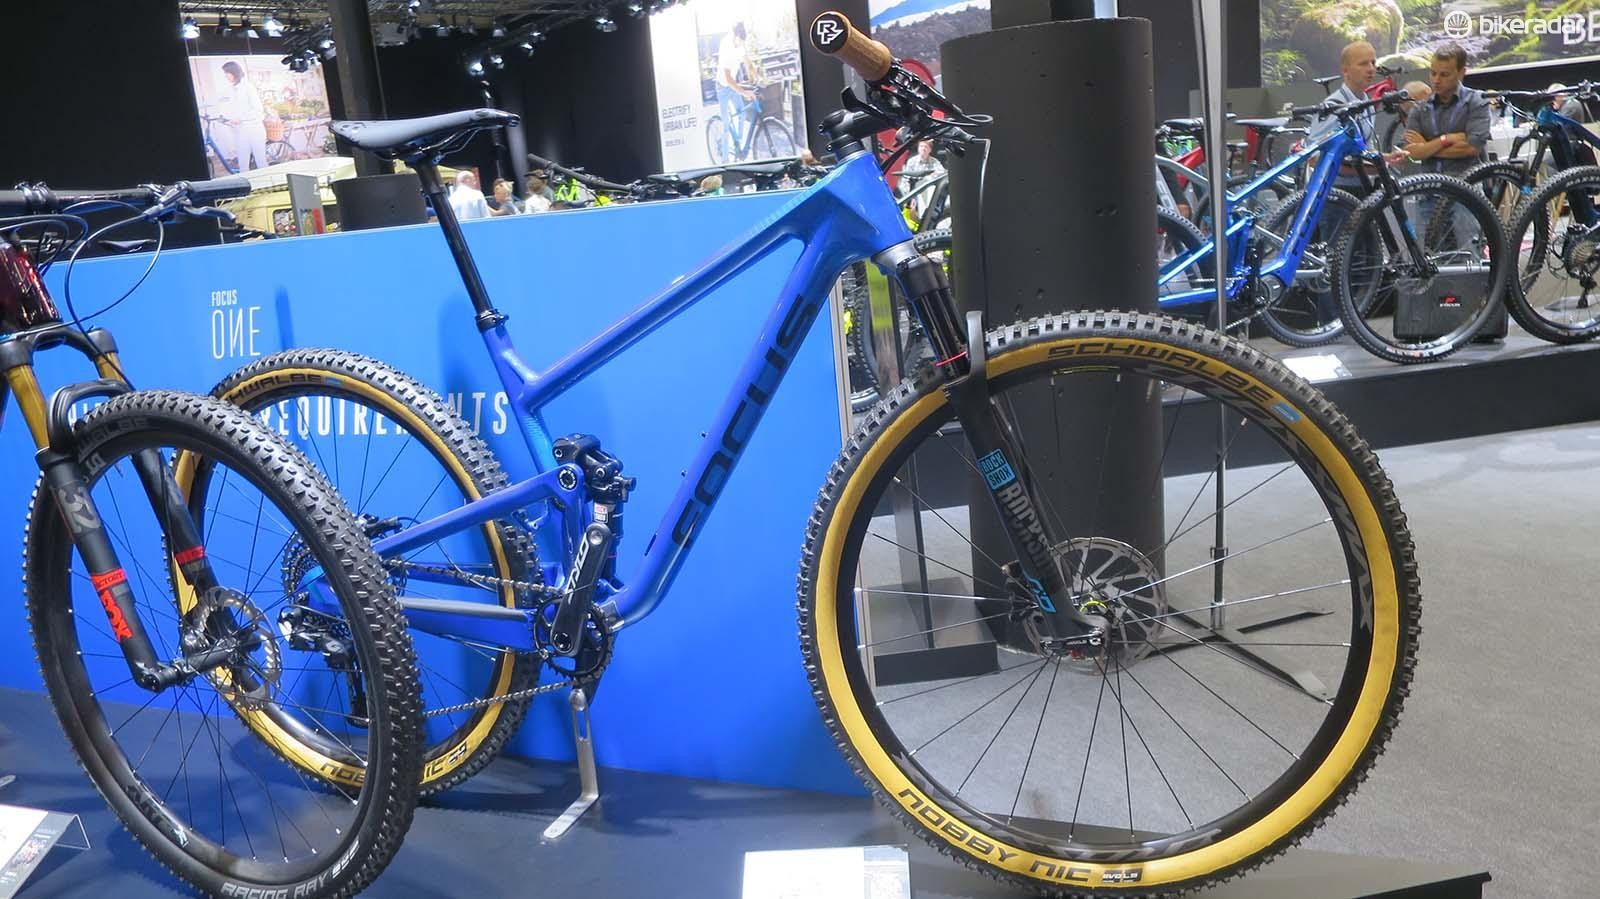 The 01E 8.9 is aimed at marathon riders or technical XC racing